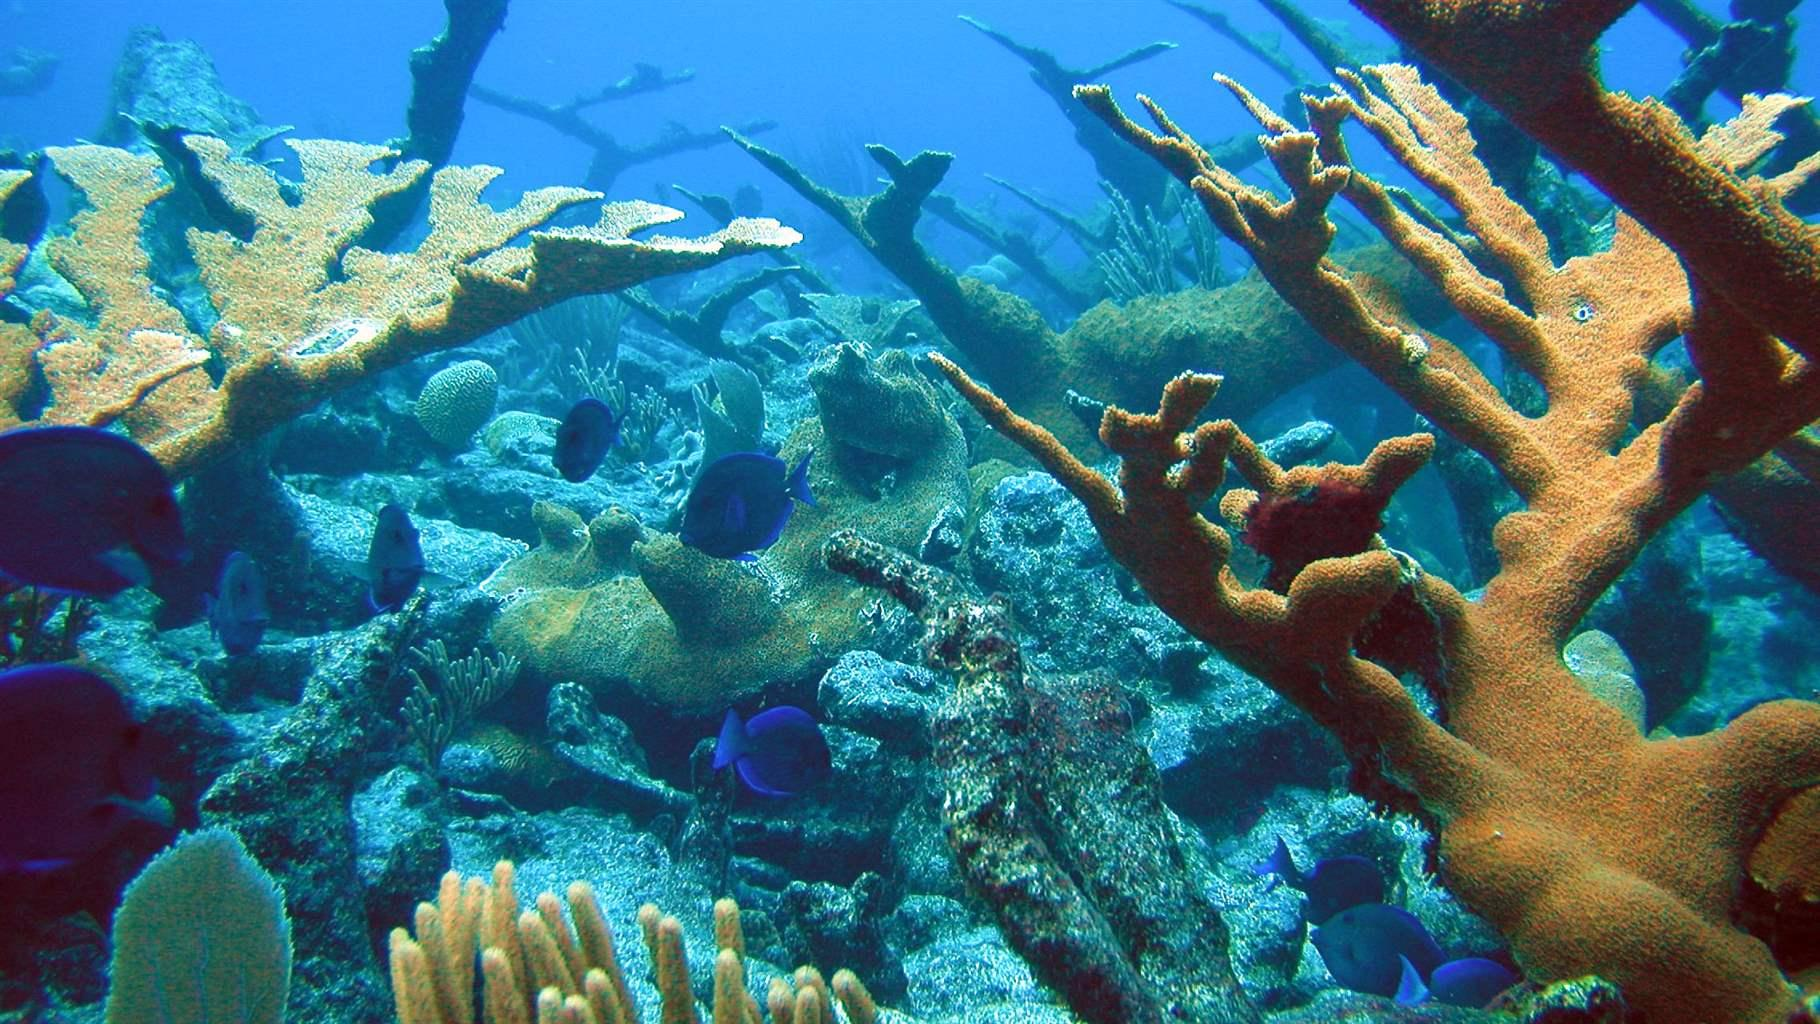 Caribbean Fishery Council Delivers Big Win for Corals, Fish, and People